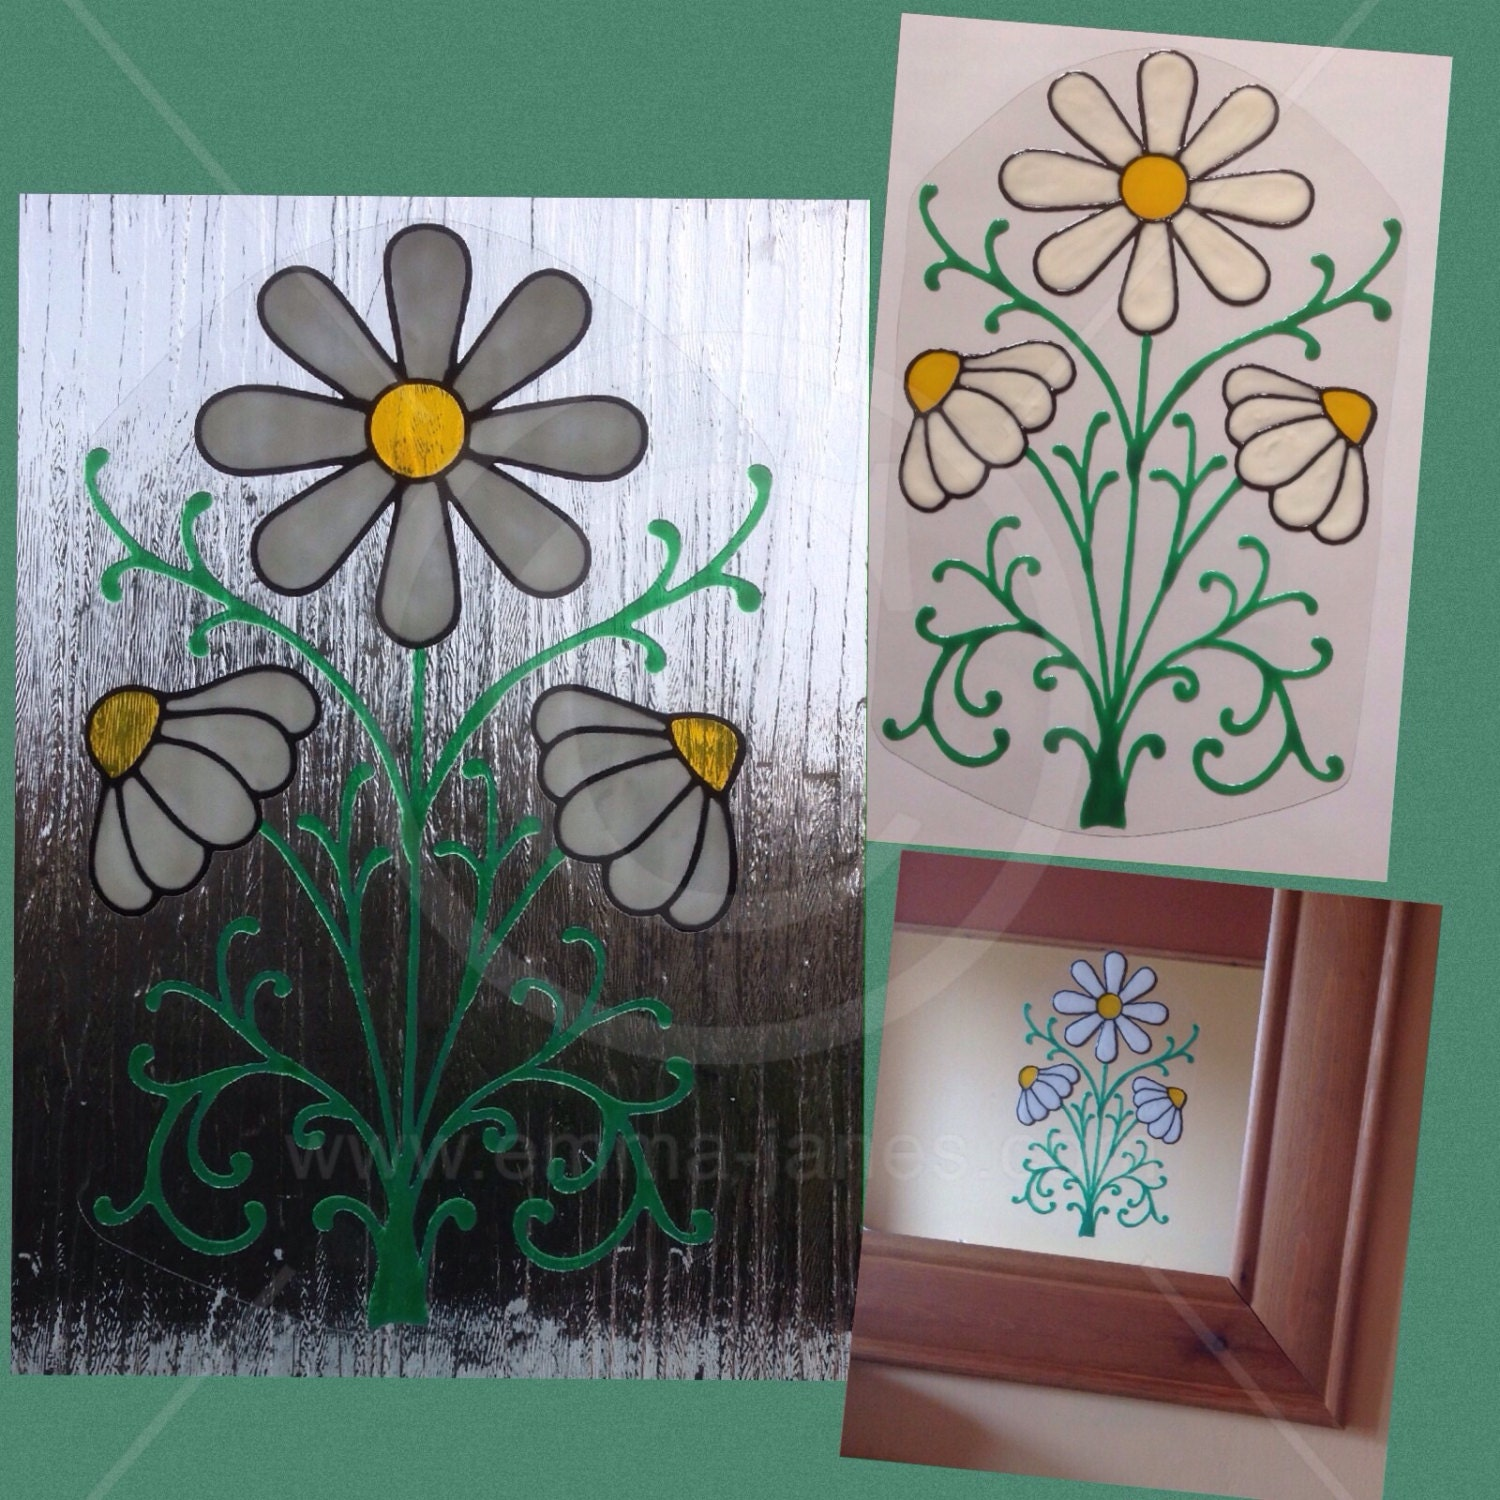 Window Cling Decorations daisy daisies window cling floral hand painted for glass &